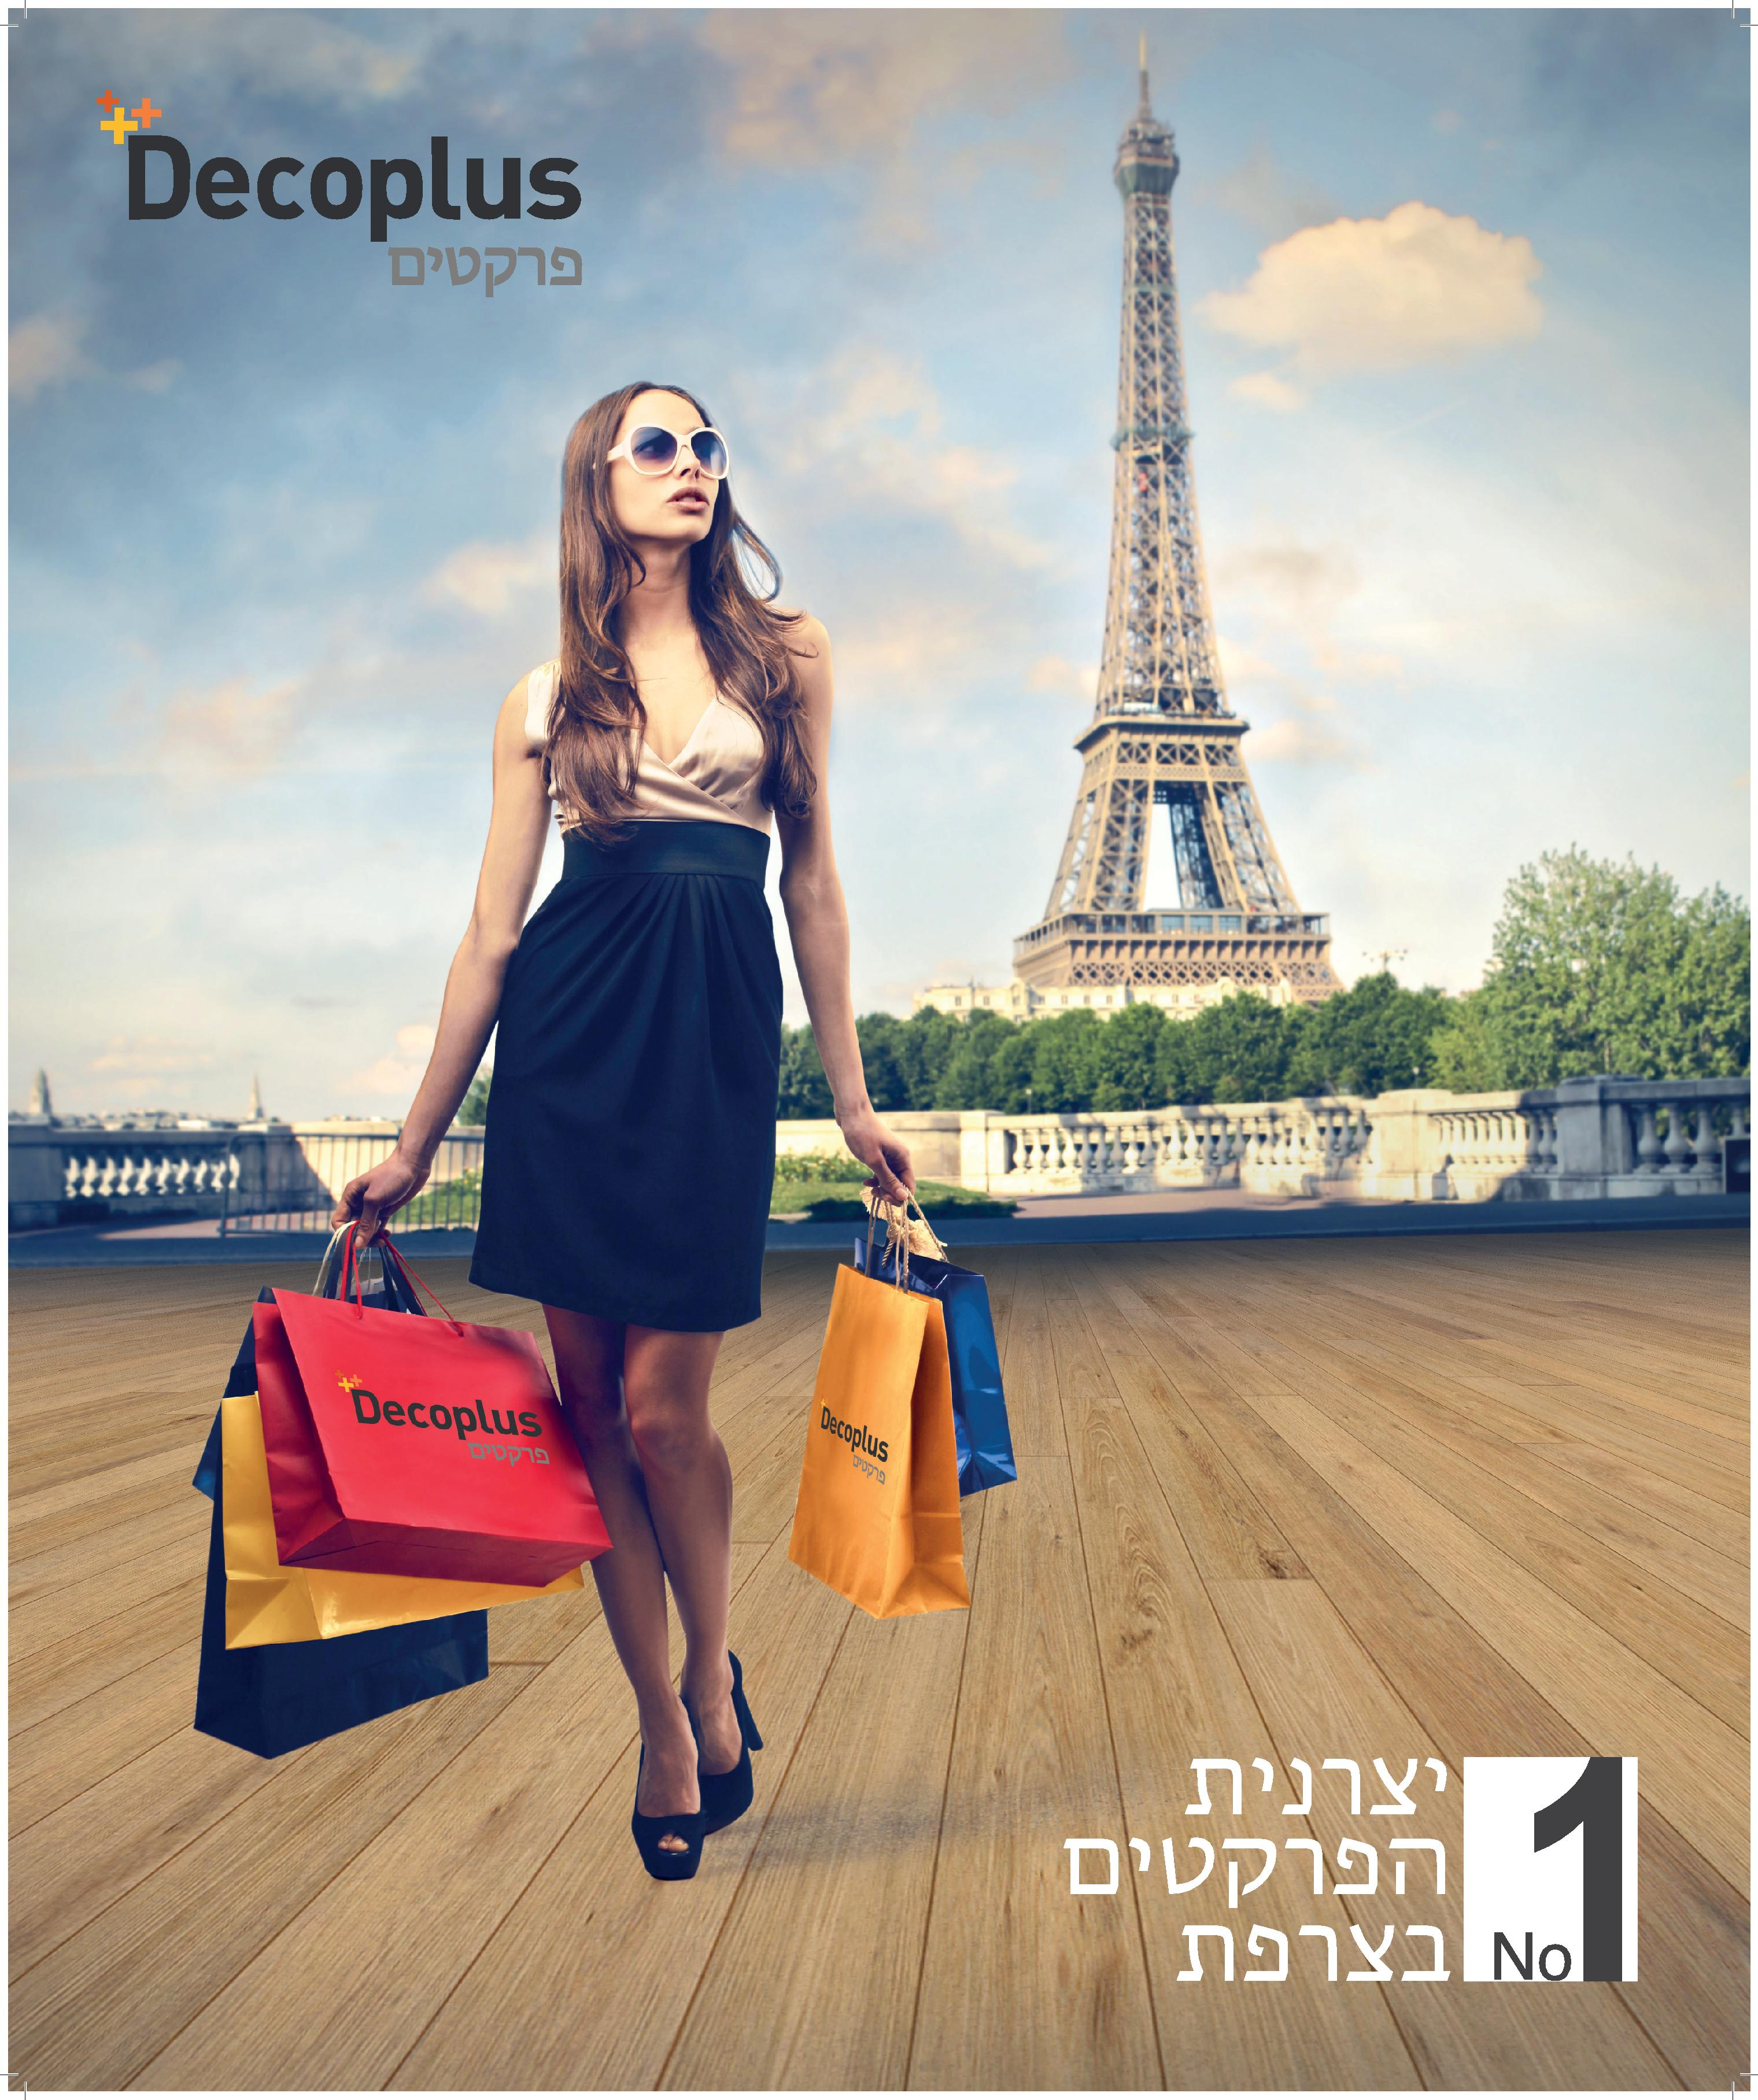 d coplus parquets la french touch s 39 installe en isra l webaviv news agence web jerusalem. Black Bedroom Furniture Sets. Home Design Ideas